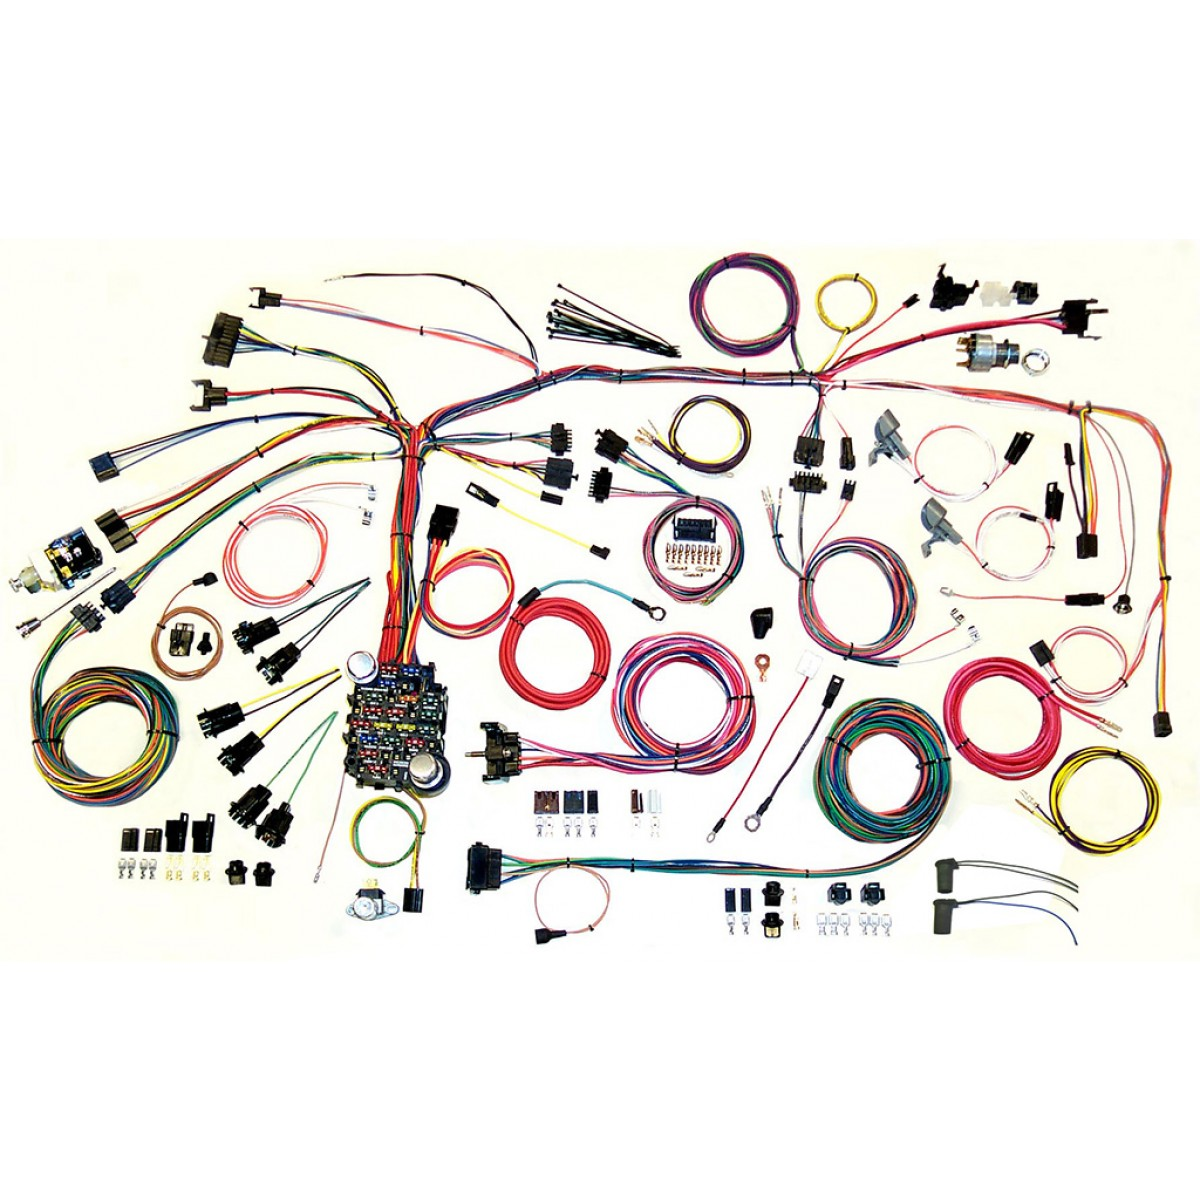 1968 Firebird Wiring Diagram Page 3 And Schematics Wire Harness Build 1967 Pontiac Firbird Complete Kit Rh Code510 Com 1994